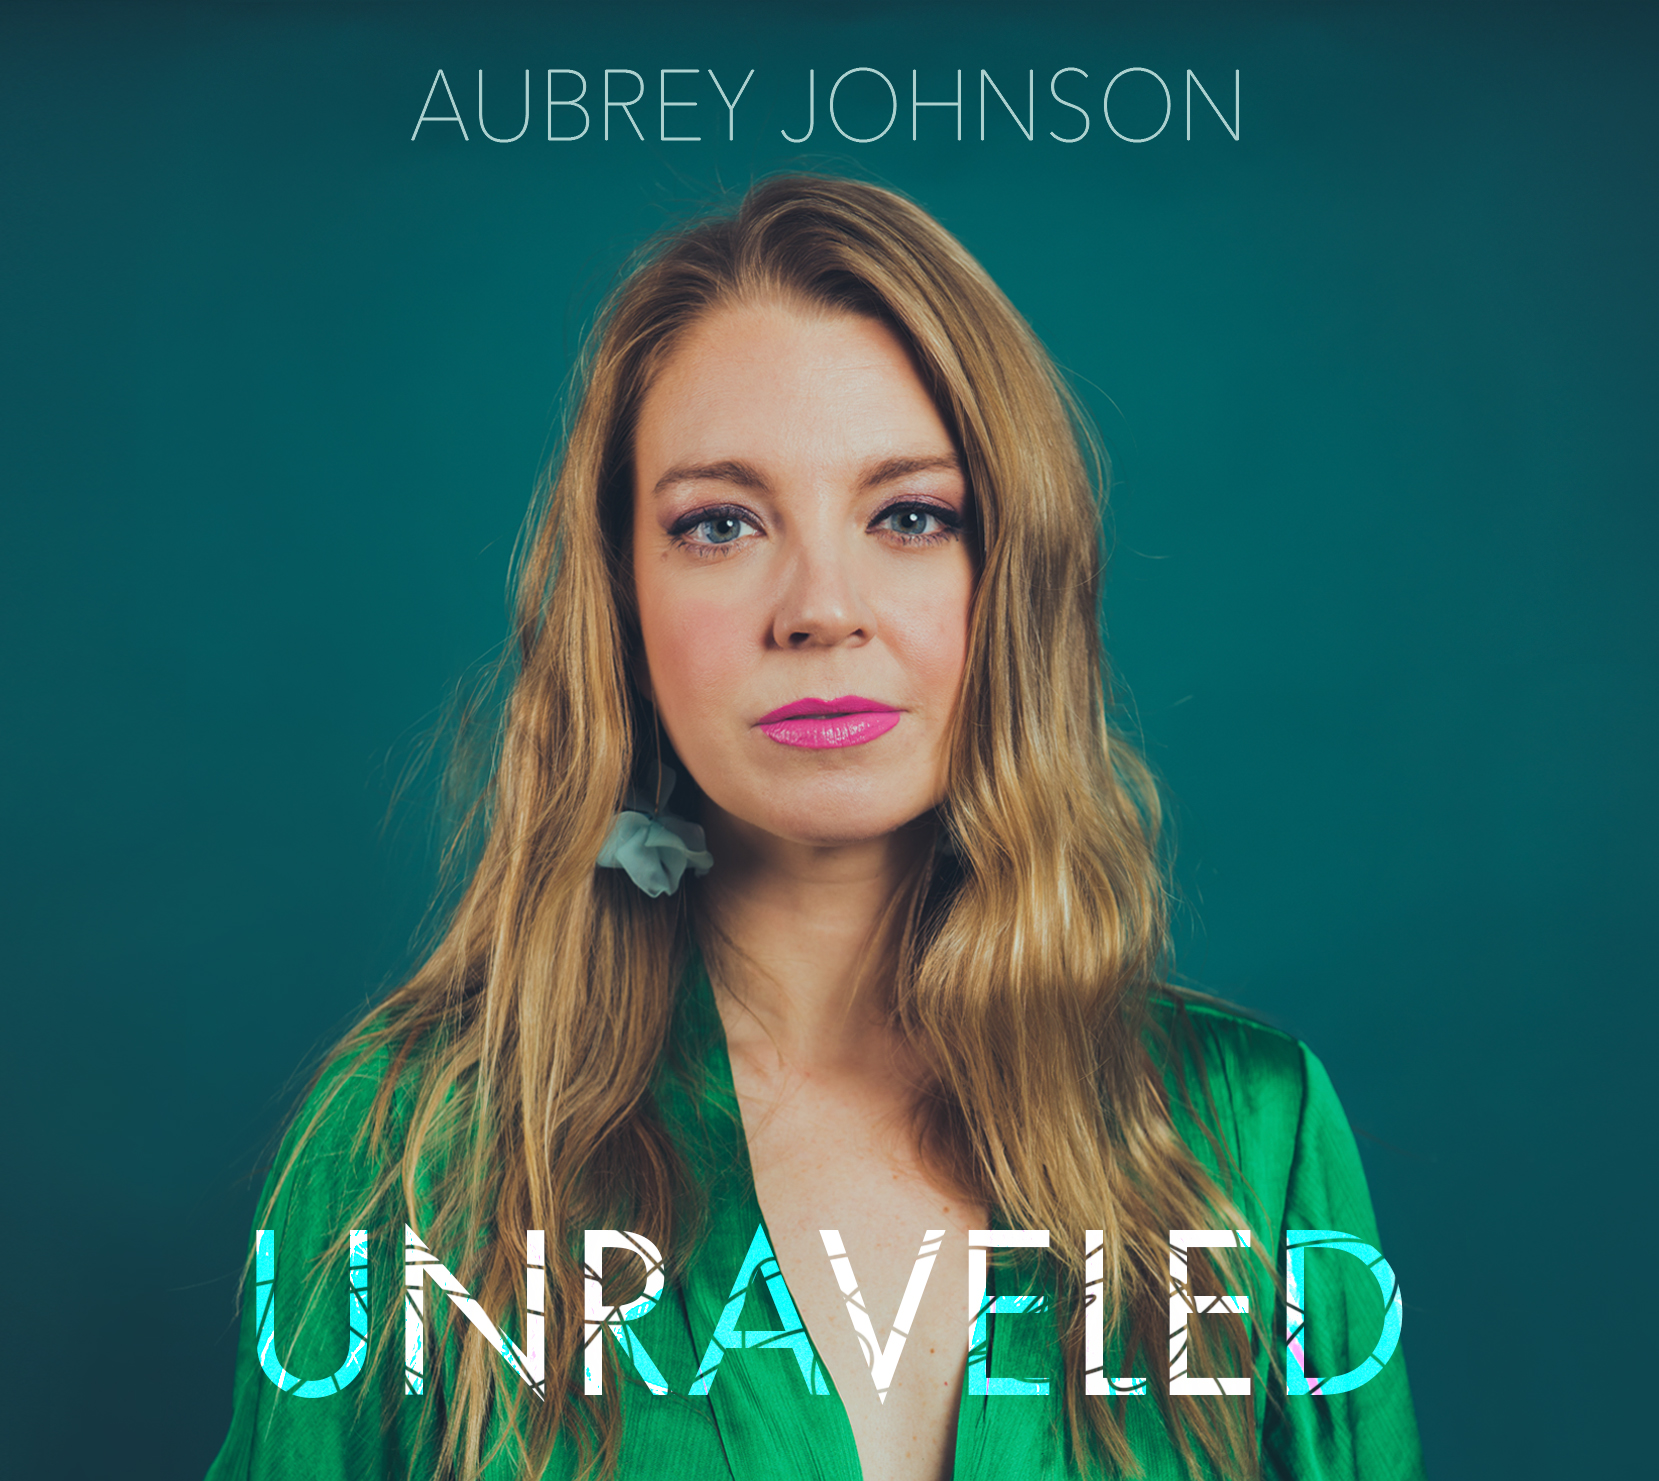 NEW RELEASE: Aubrey Johnson's Debut UNRAVELED Due Out 3/20/20 on Outside in Music